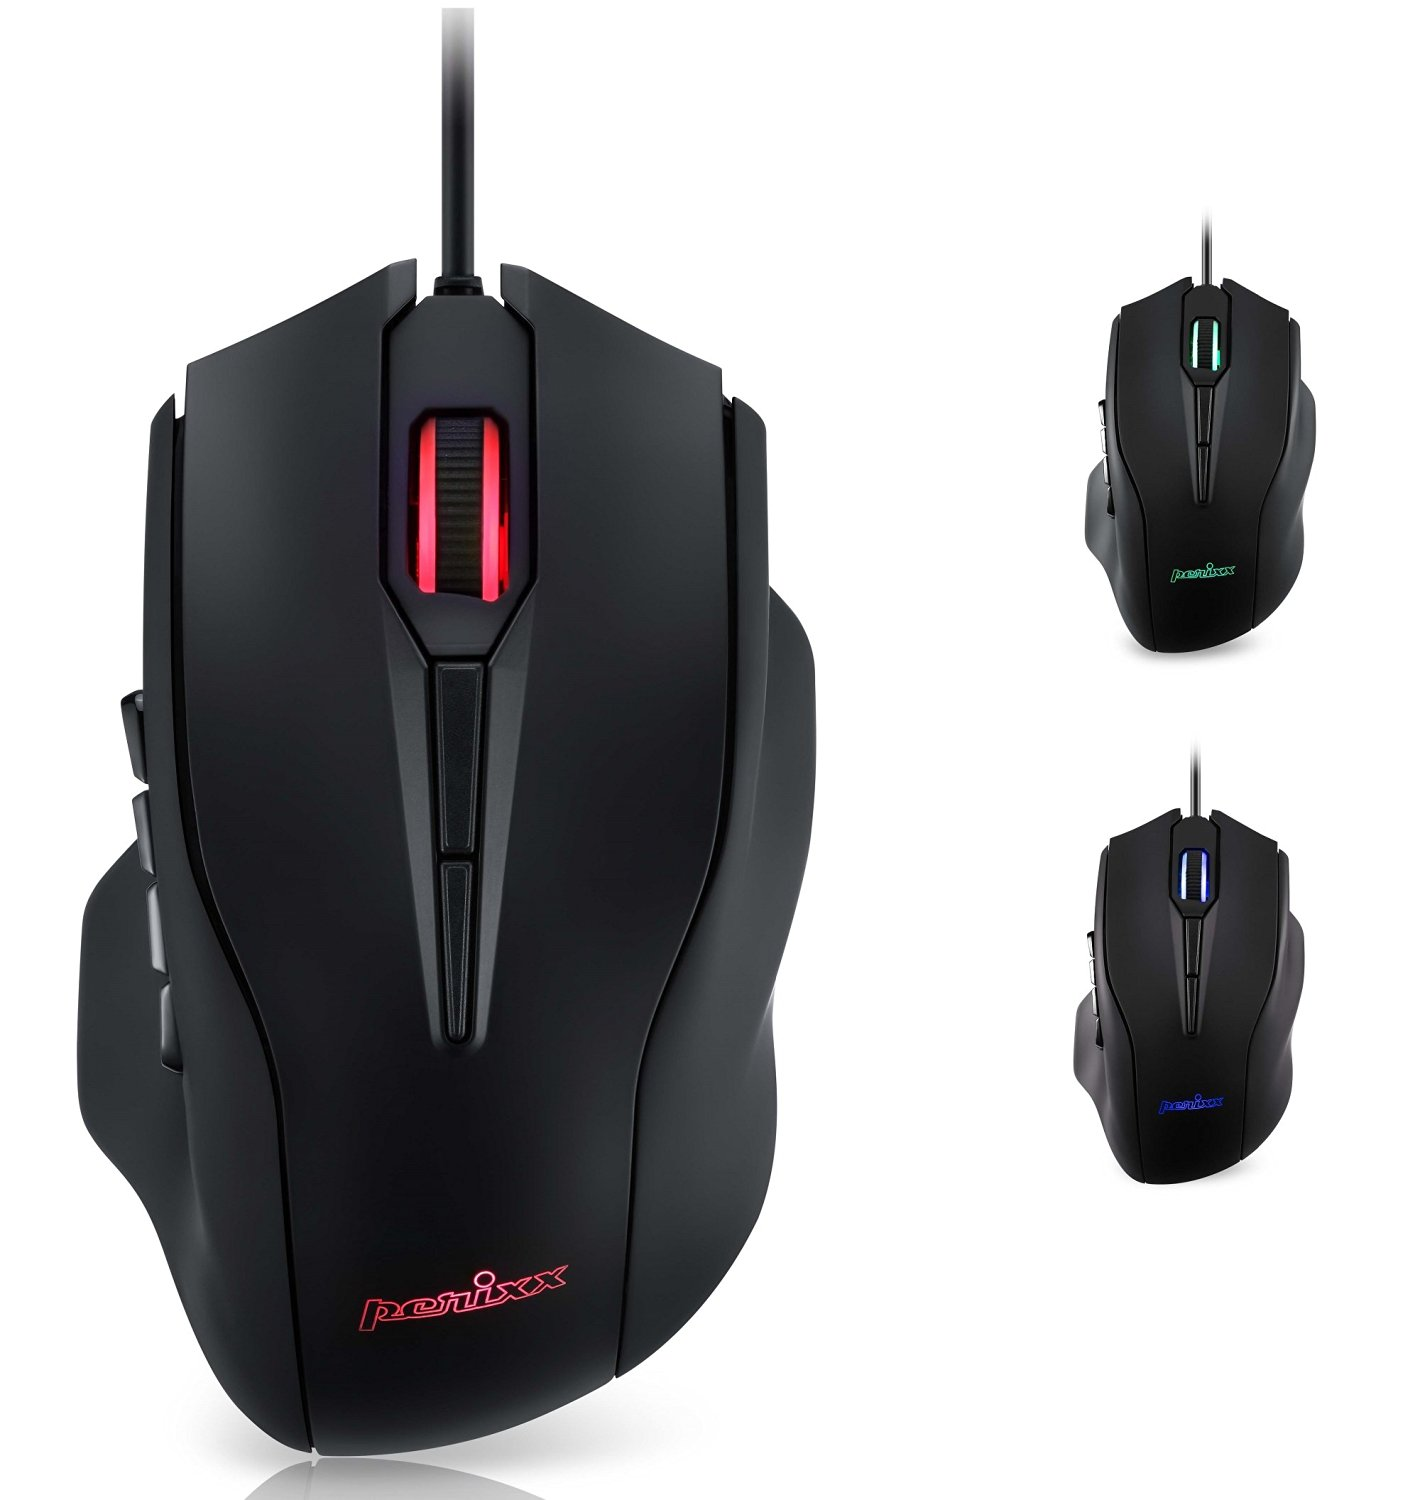 Perixx MX-3100 MMO Gaming Mouse - 12000 DPI - PMW 3360 - 12 Thumb Buttons - RGB Lightning - Programmable Tilt Wheel